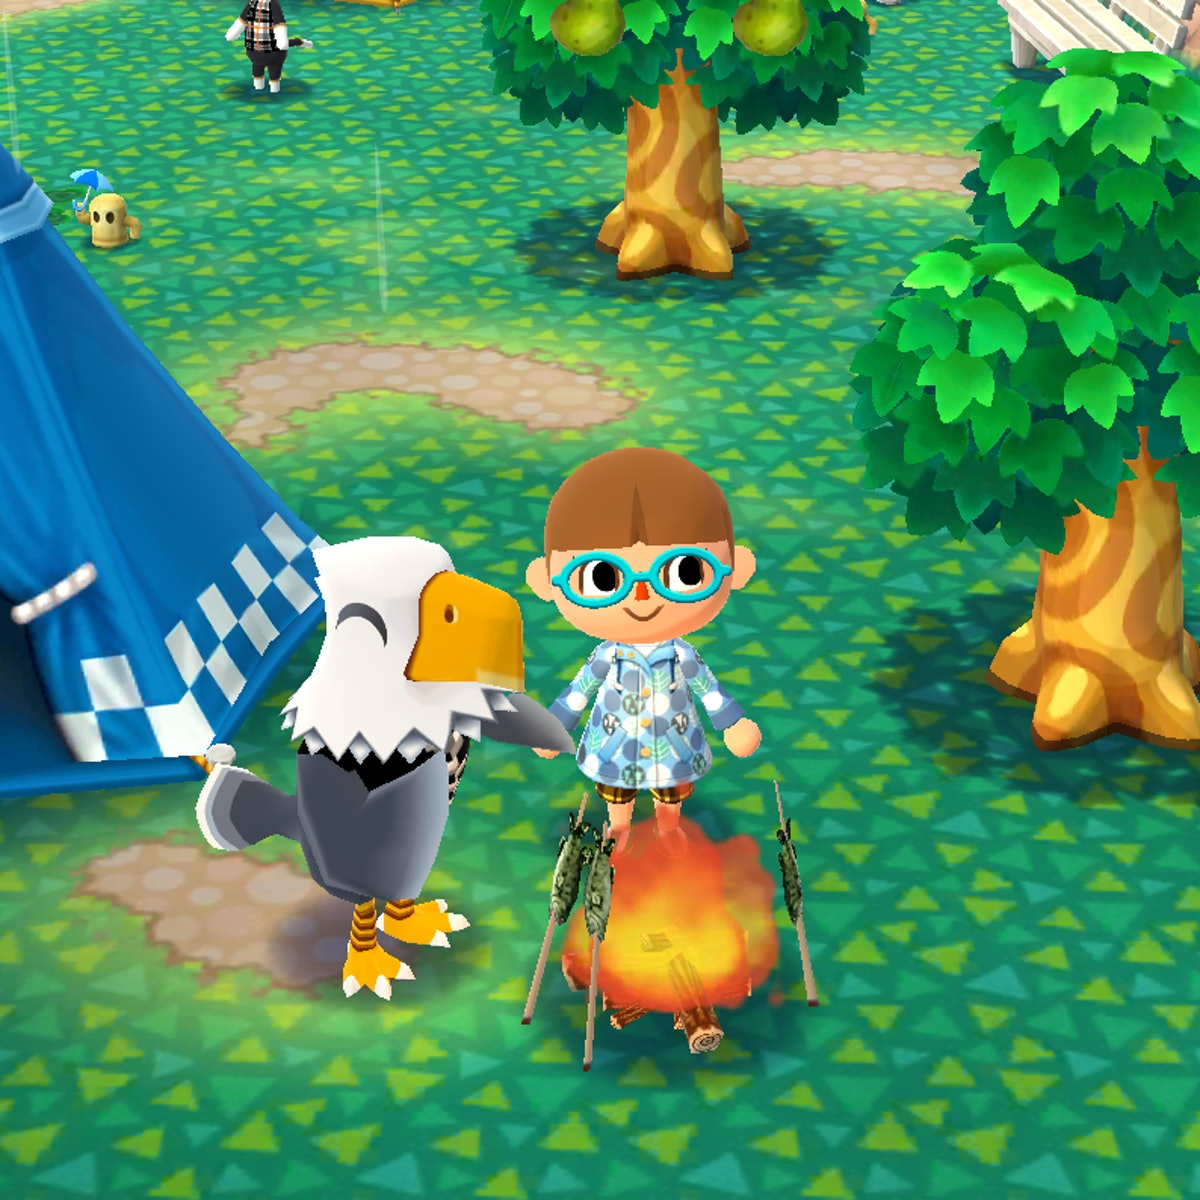 Apollo from 'Animal Crossing' hangs out near a campfire in the video game.